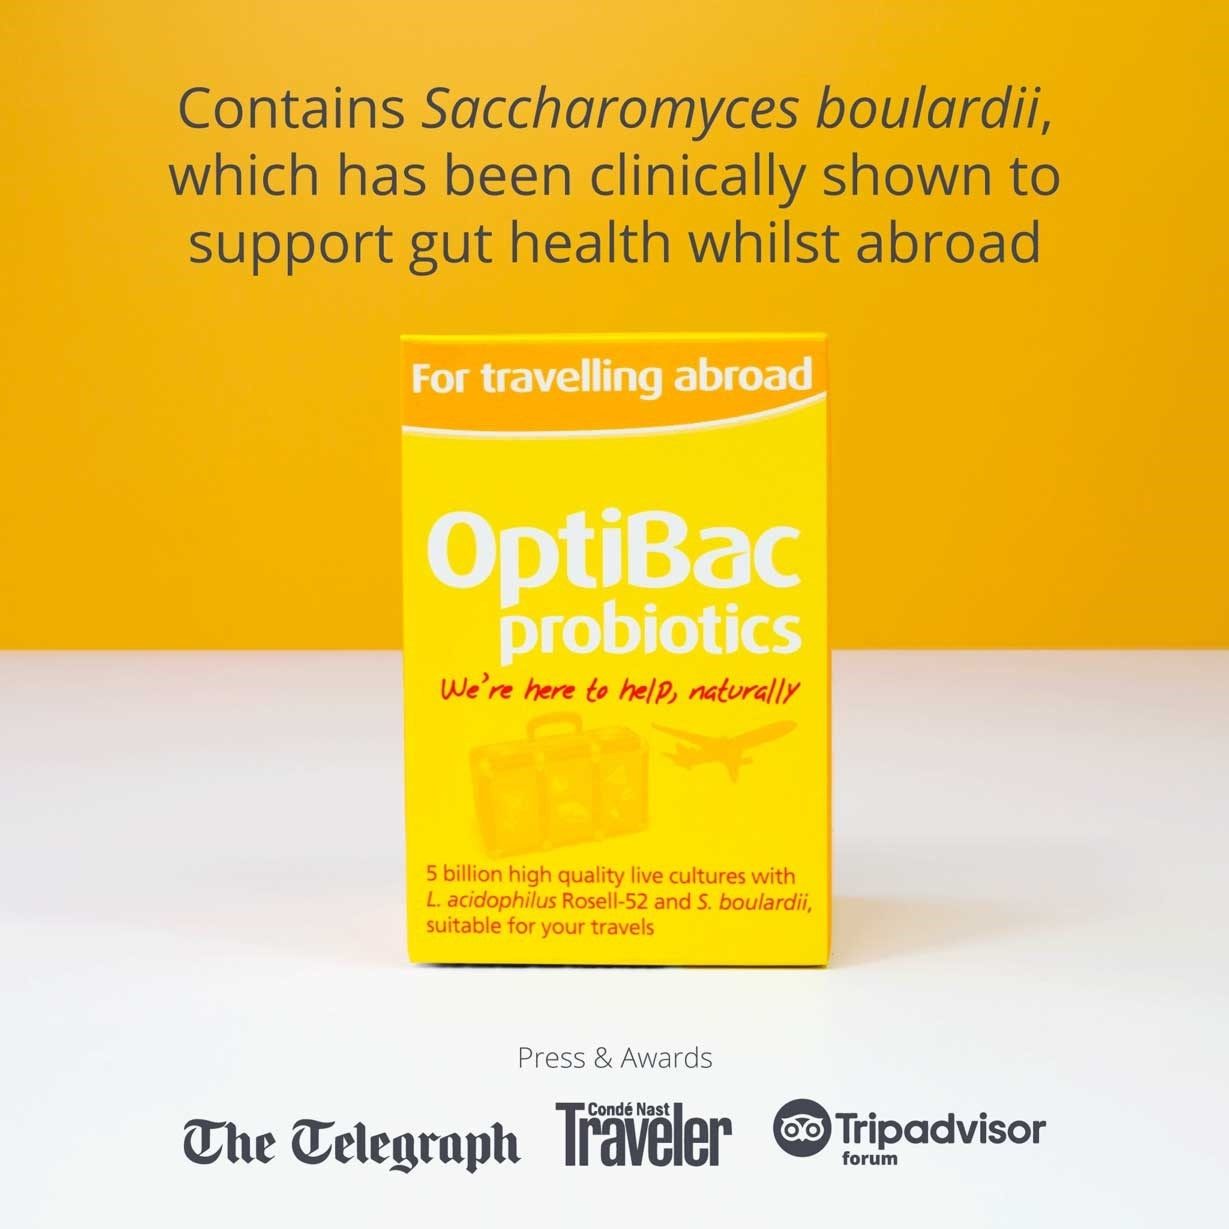 Optibac Probiotics For travelling abroad mentioned in press